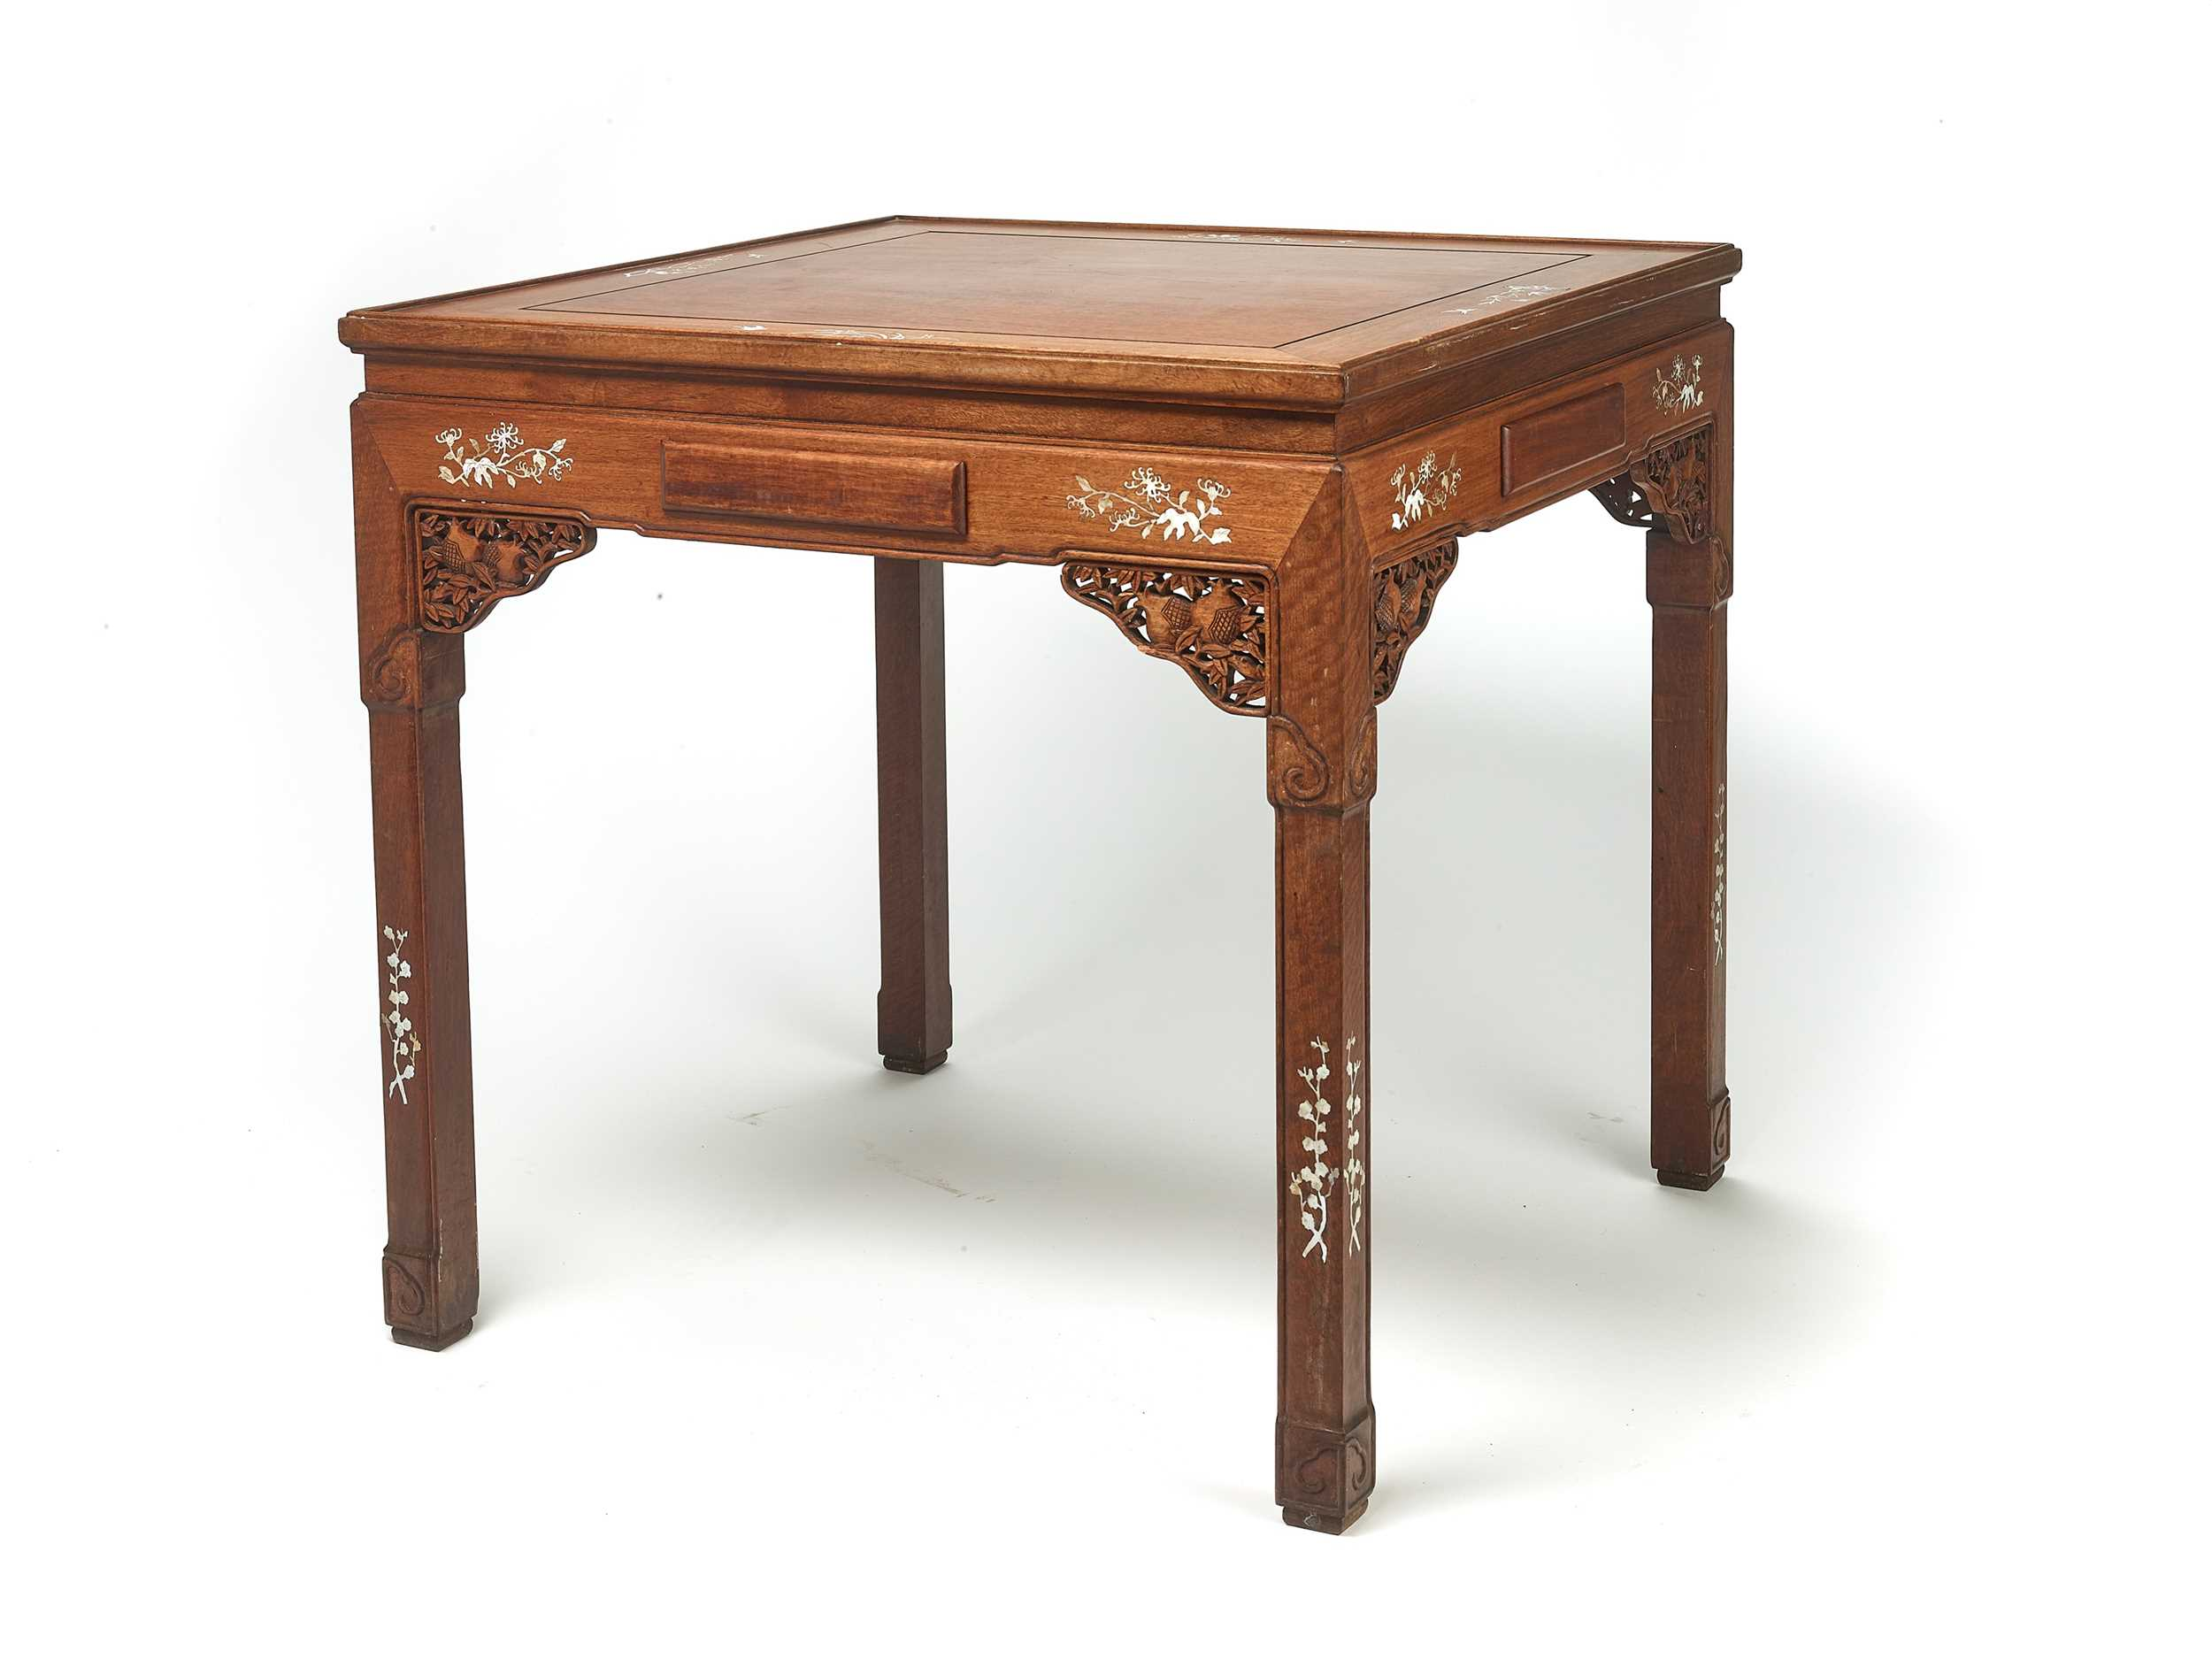 Lot 148 - AN INLAID CHINESE SQUARE TABLE, LATE QING DYNASTY